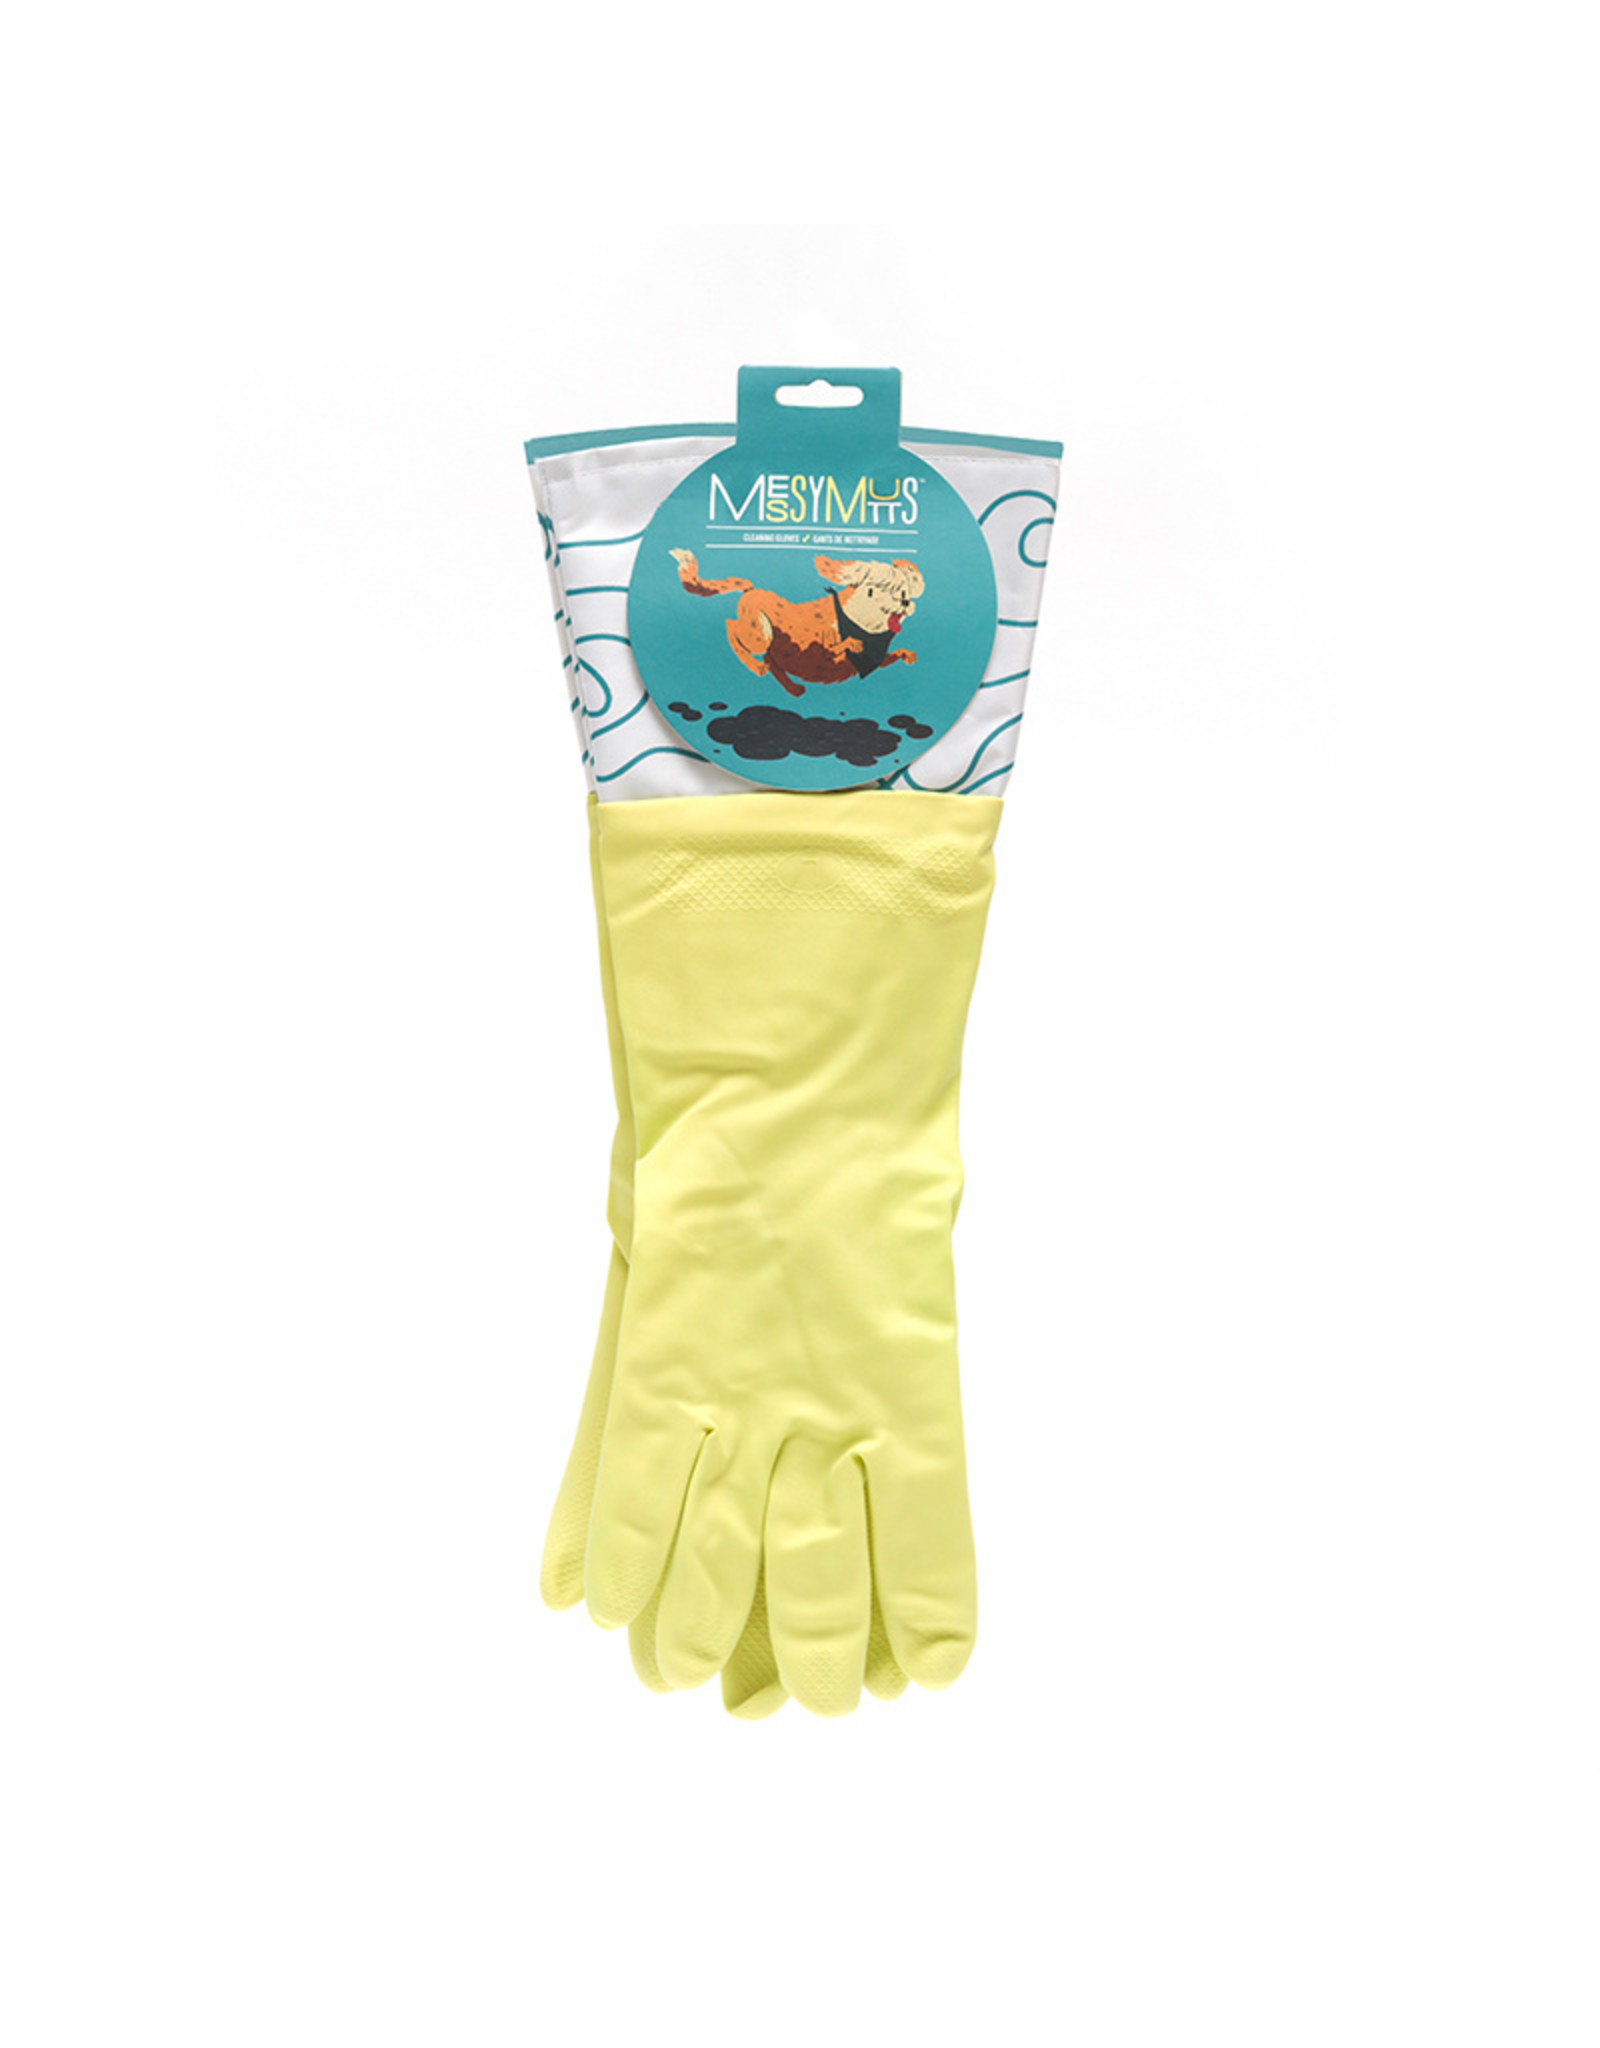 Messy Mutts Messy Mutts Silicone Grooming Glove